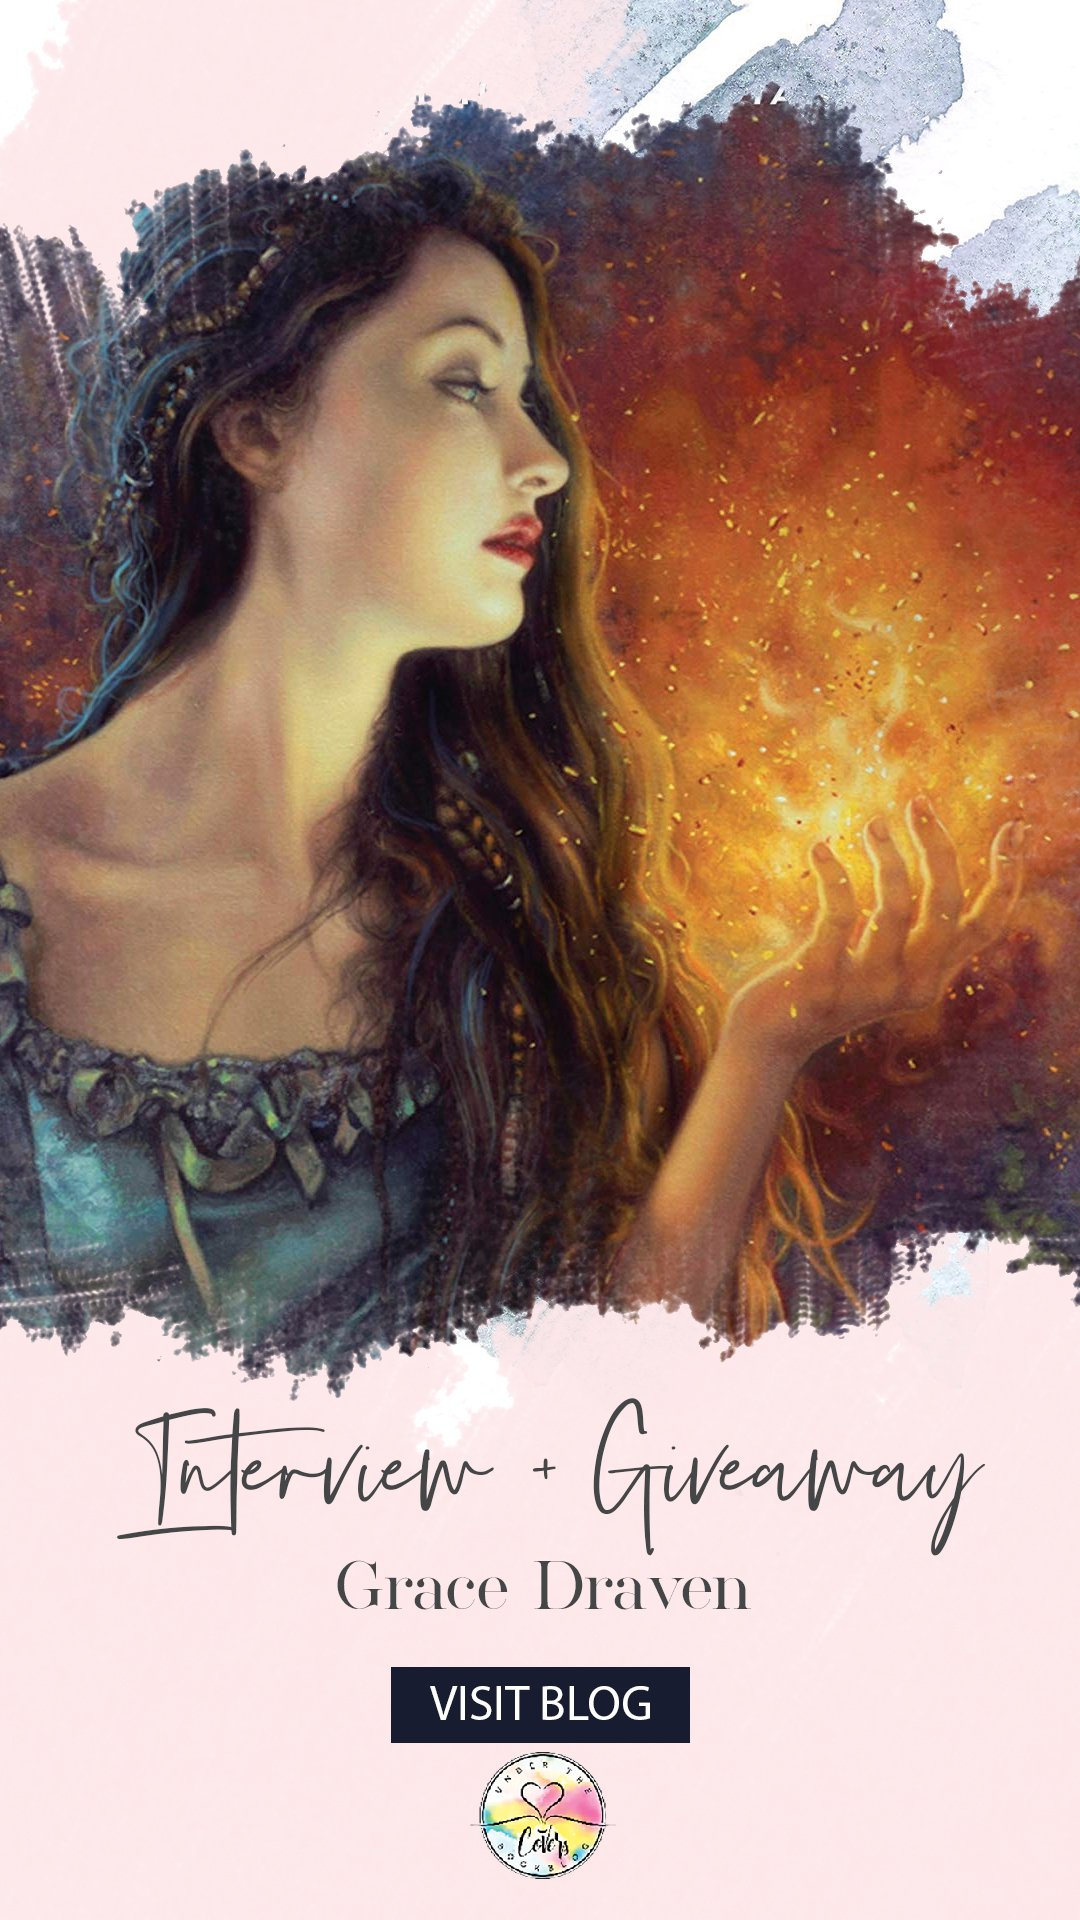 Interview and Giveaway with Grace Draven